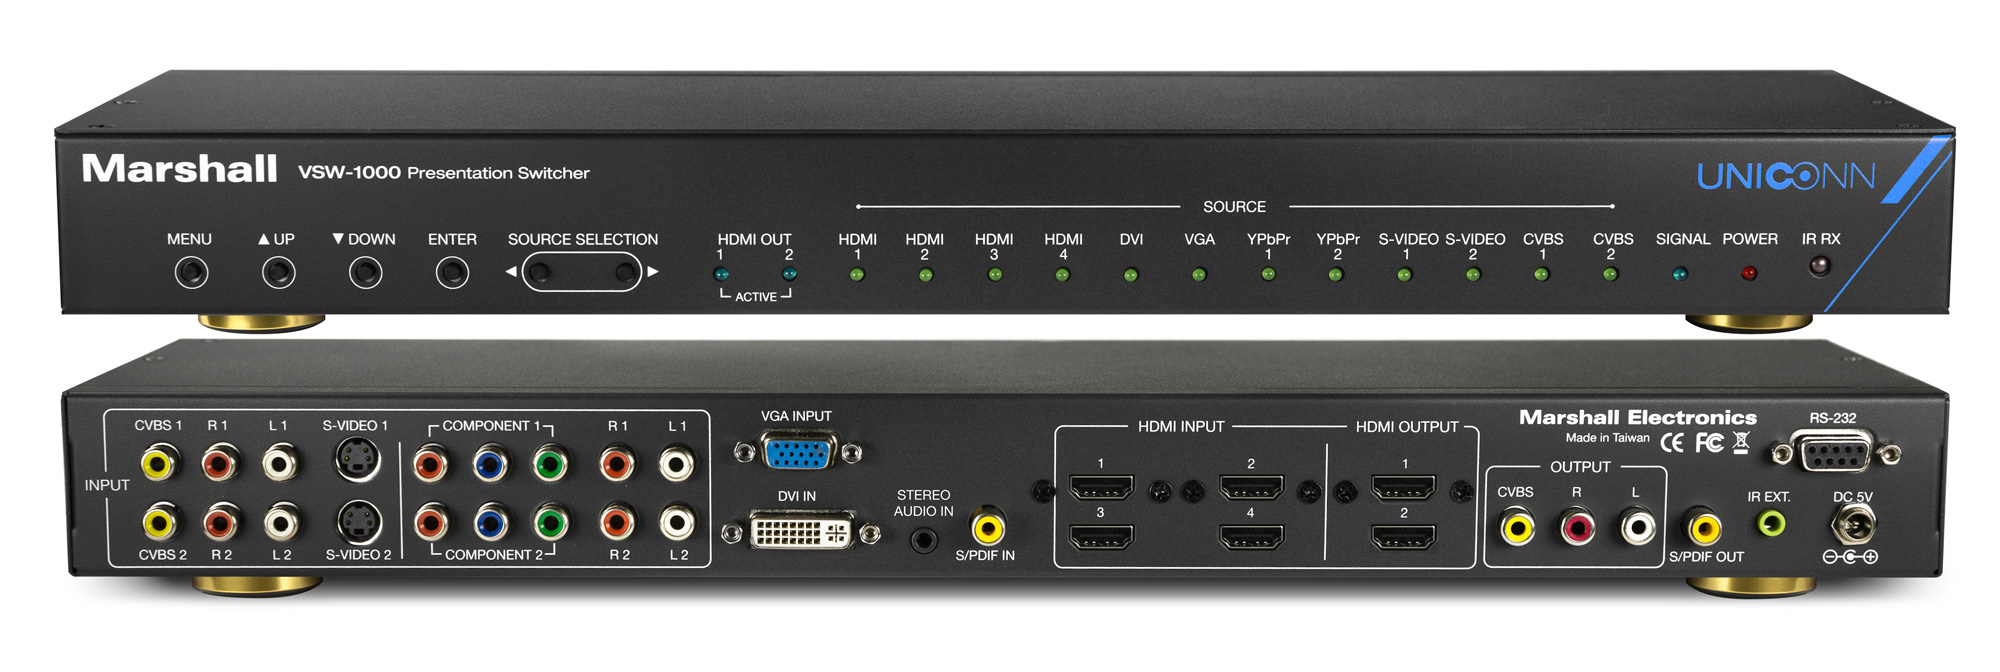 Marshall Vsw 1000 Multiformat Presentation Switcher Hdmi